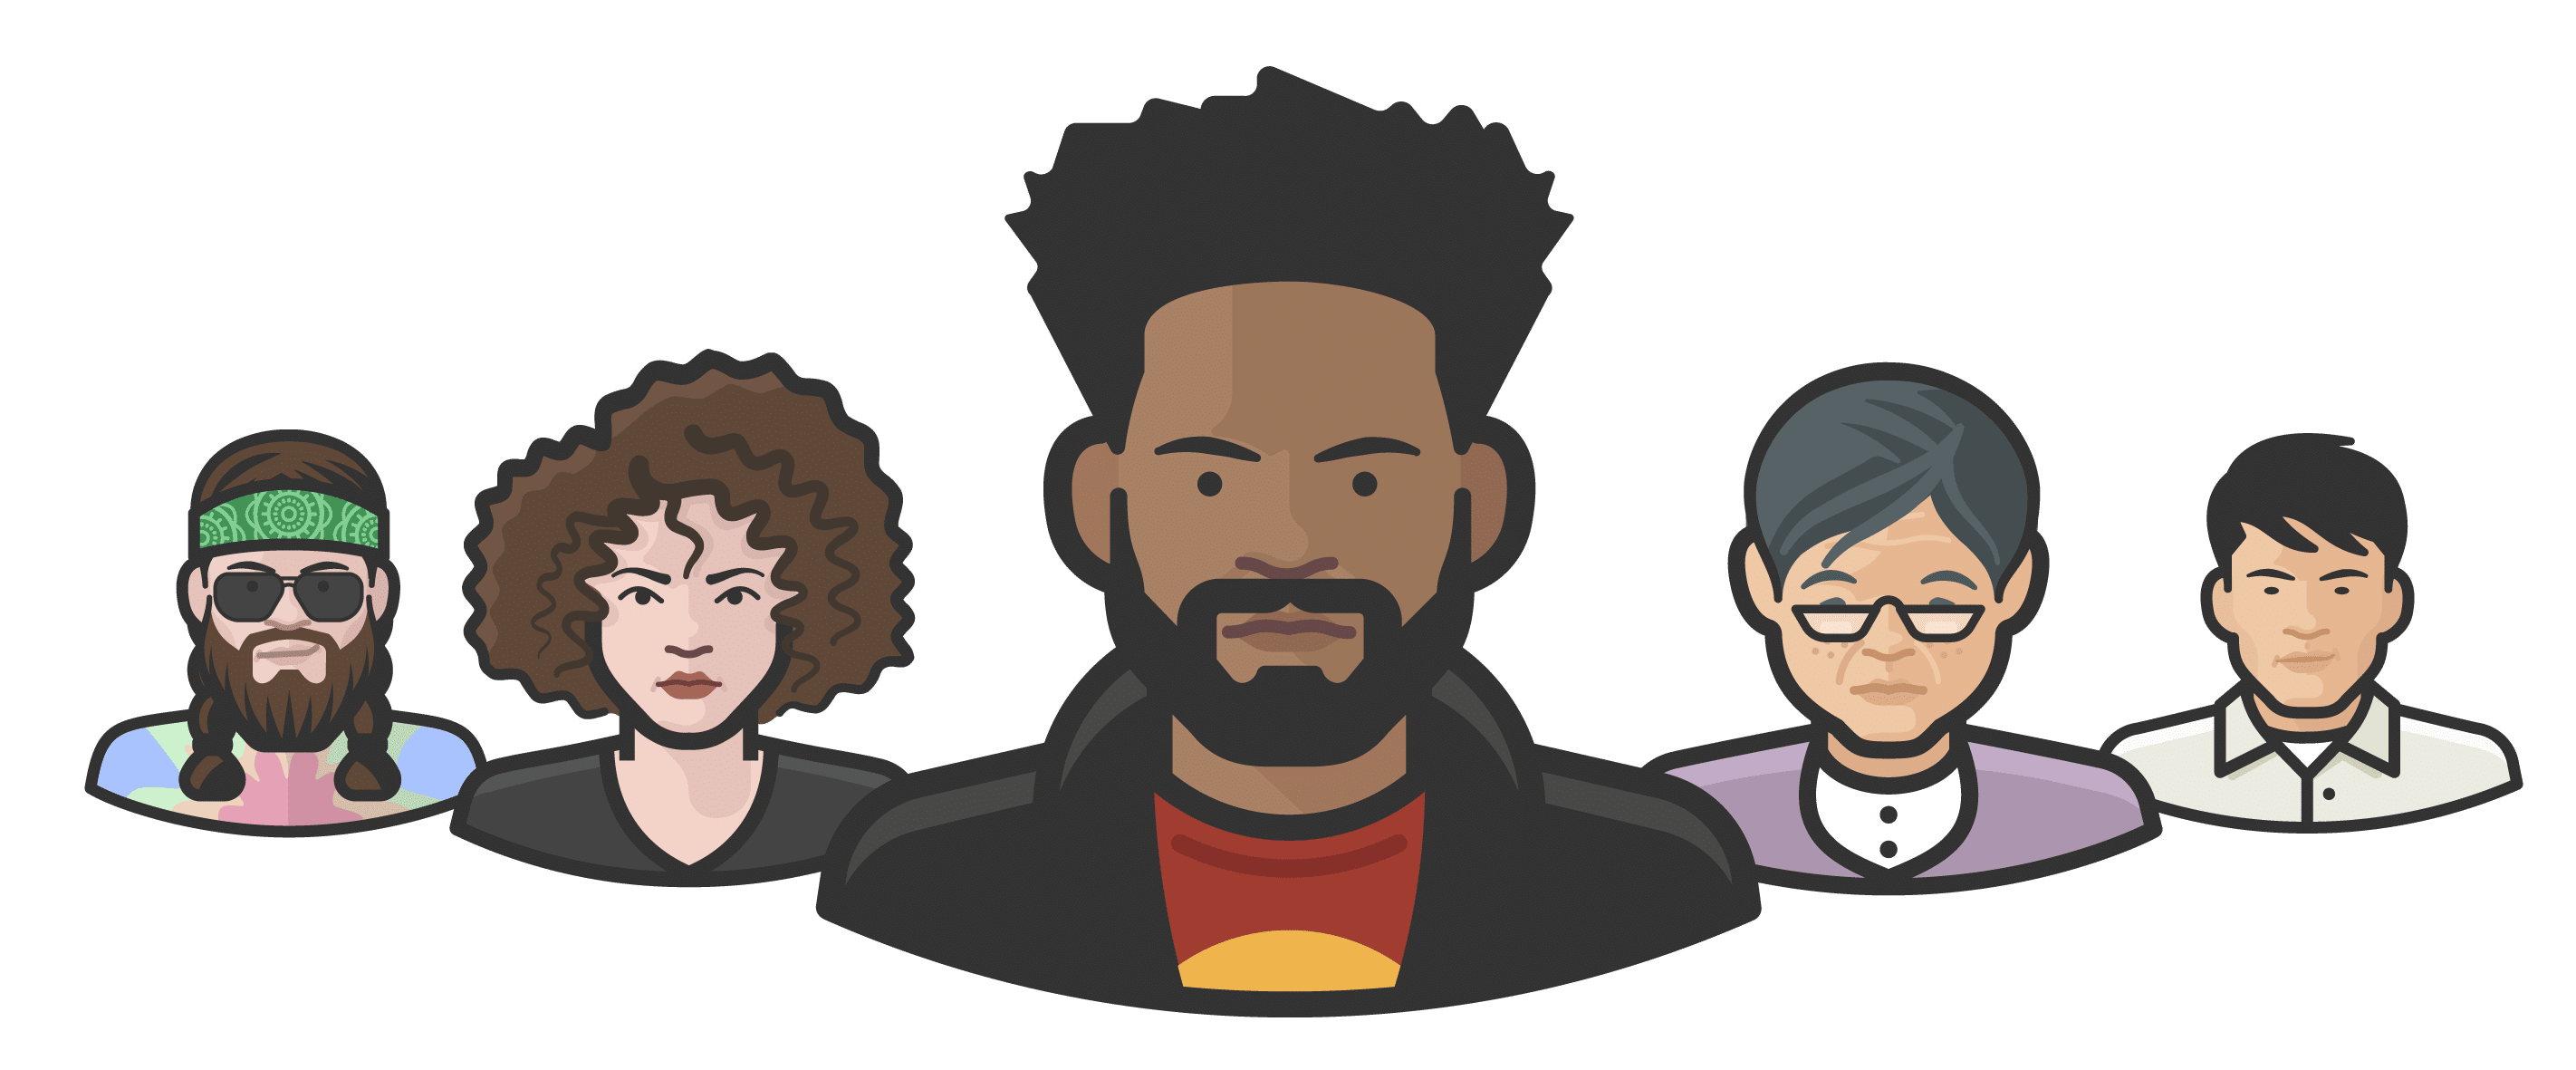 An image of five different illustrated avatars showing a range of ethnicities, ages and genders